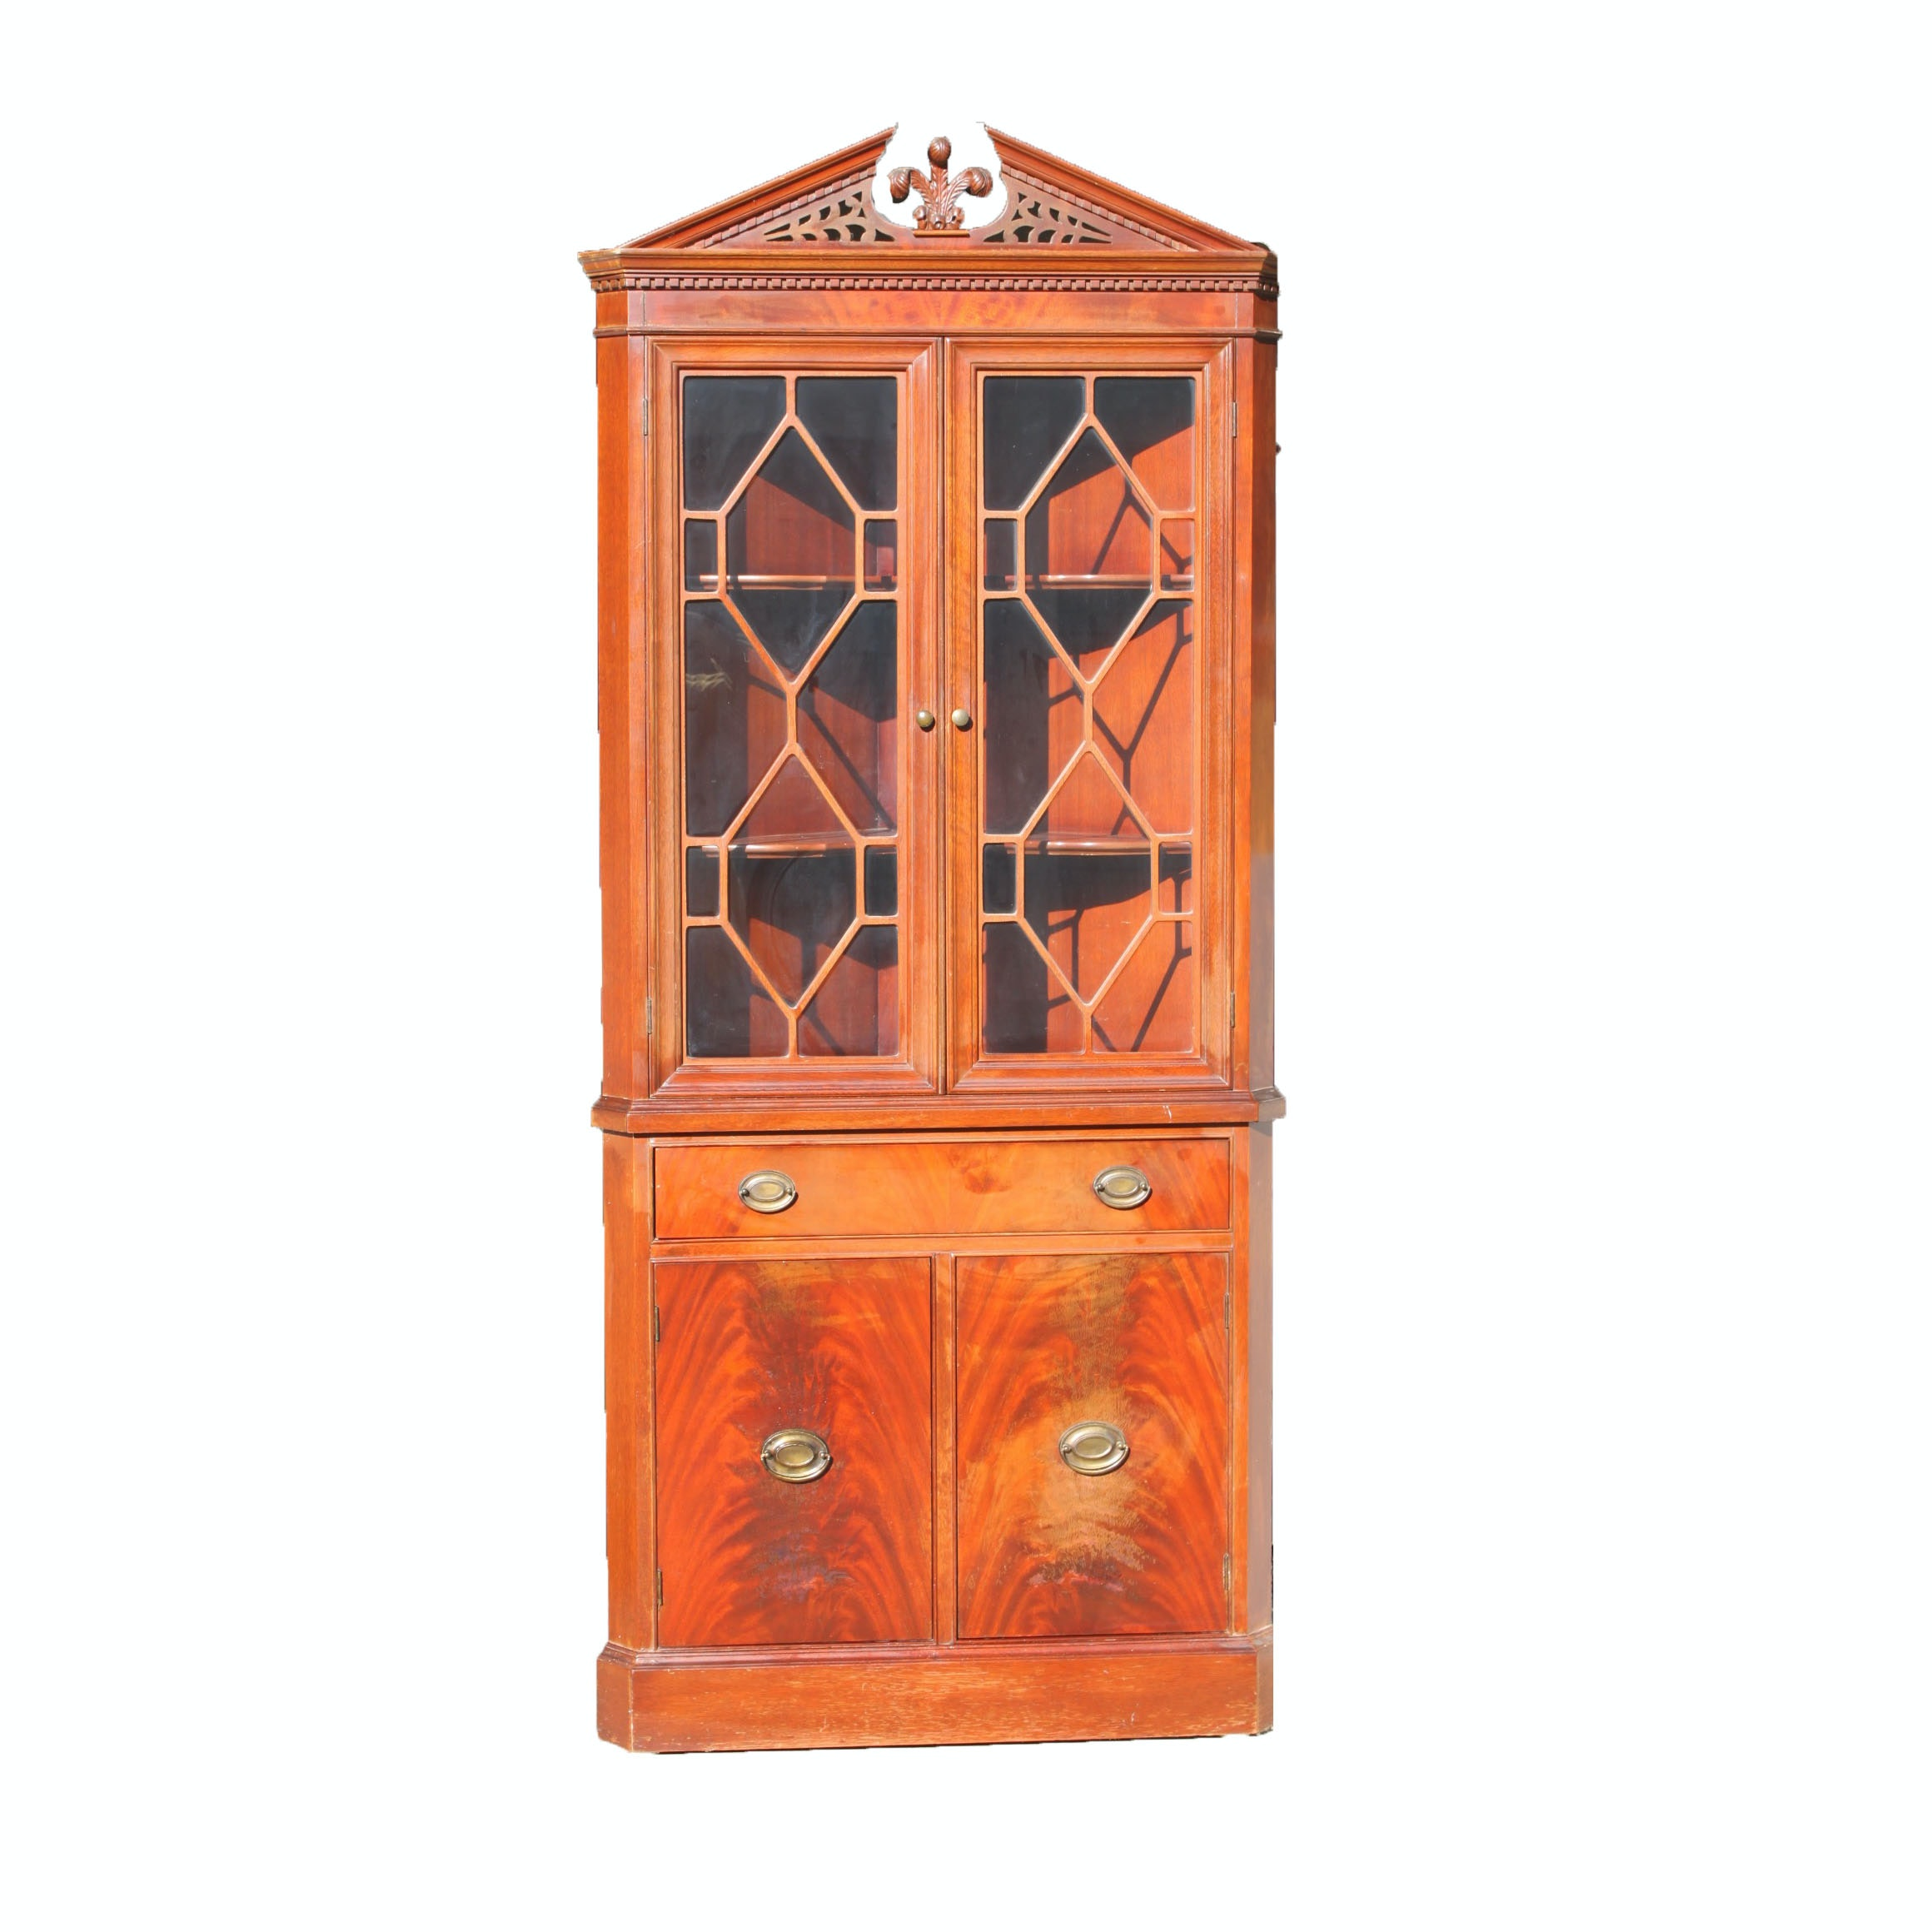 Vintage George III Style Corner Cabinet by Finch Furniture Co.